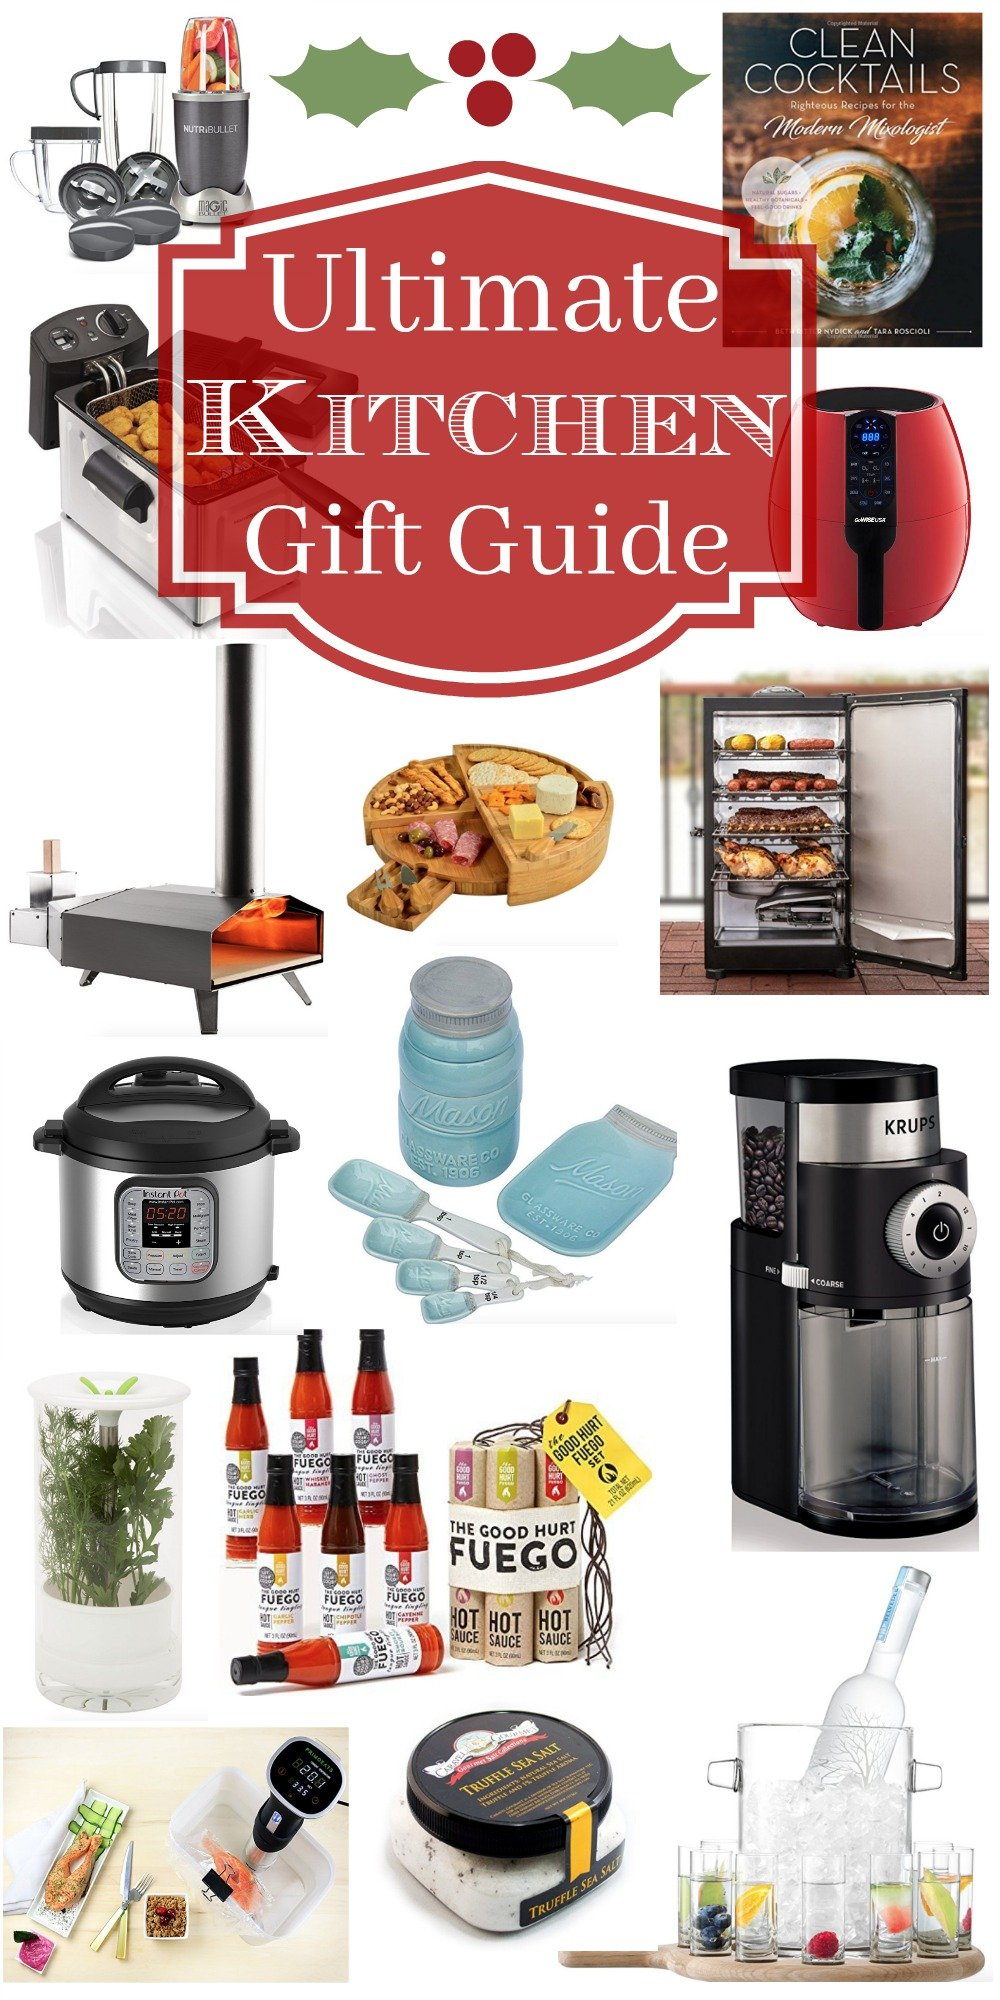 This Is The Ultimate Kitchen Gift Guide For Foo Or Cooking In Your Life My Best Recommendations Of Gifts Everyone Will Love